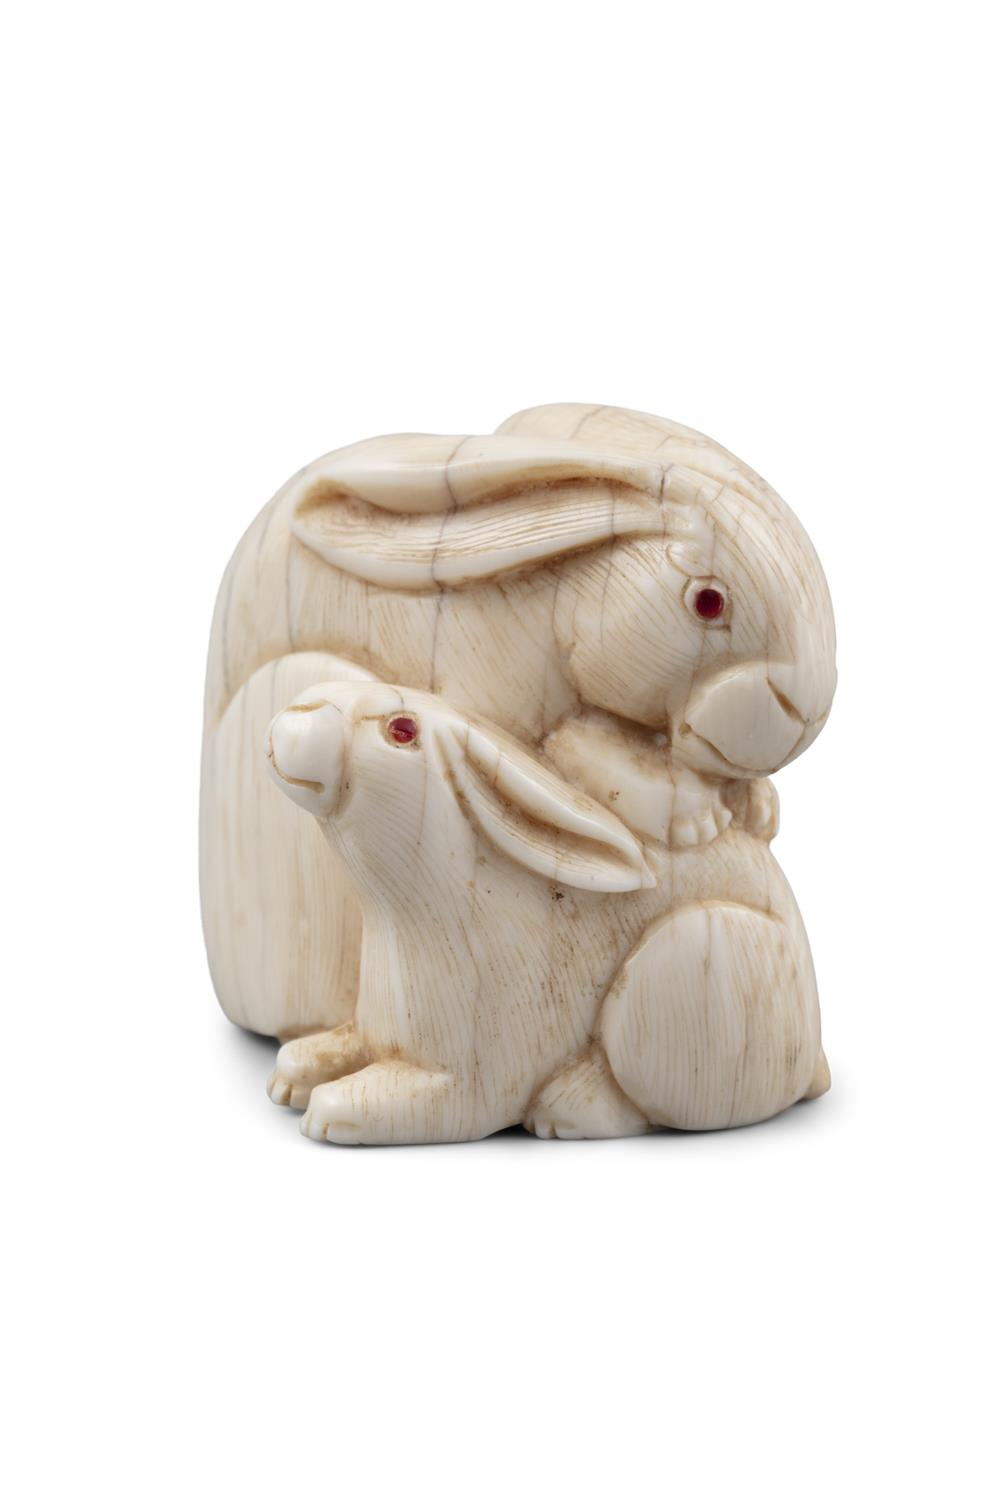 *A SIGNED IVORY 'TWO COILED RABBITS' KATABORI NETSUKE Japan, 19th century With inlaid eyes. - Image 3 of 4